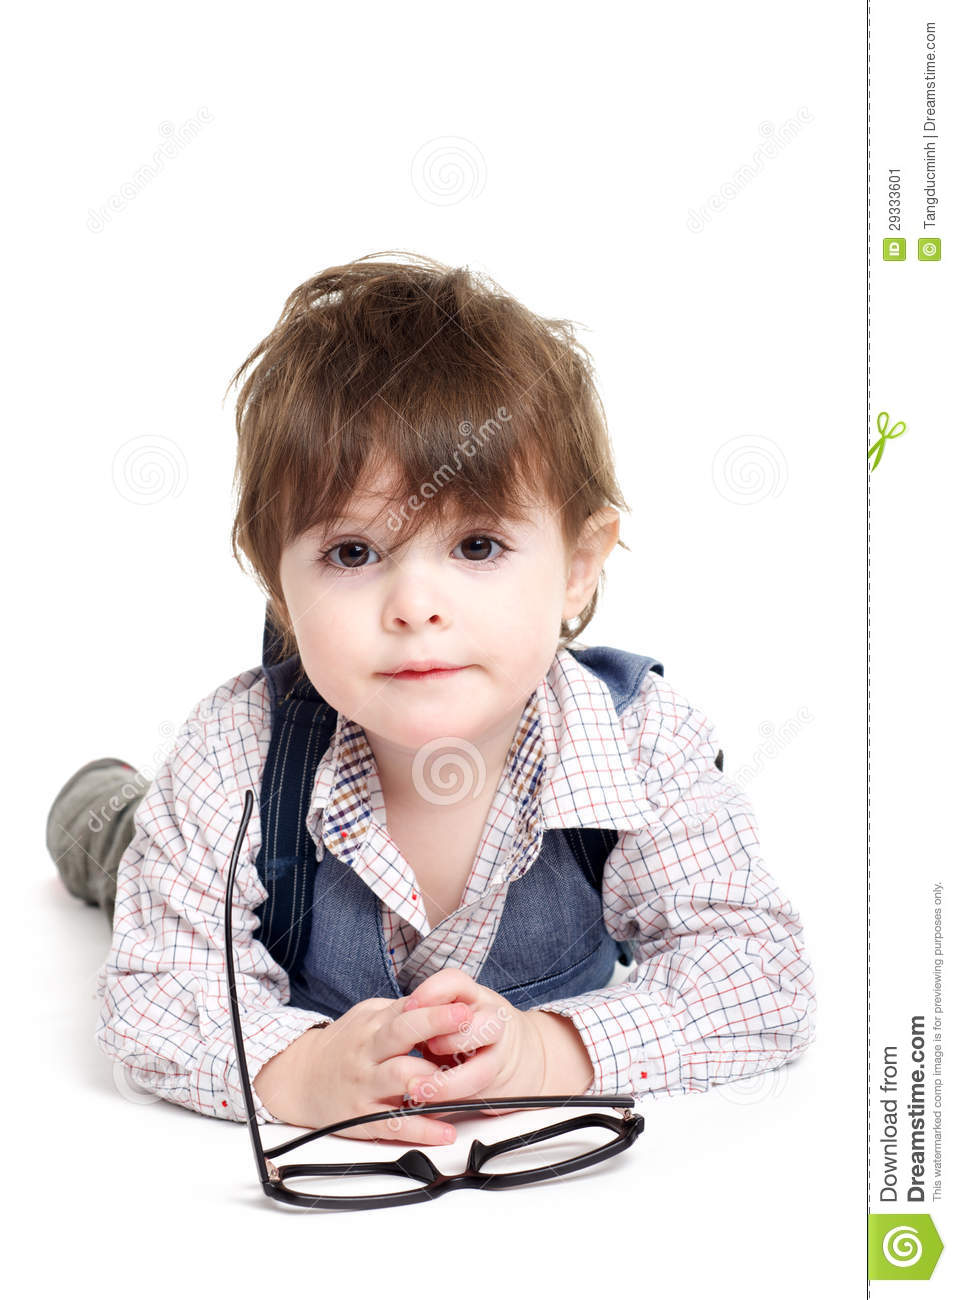 Cute smart baby kid with glasses